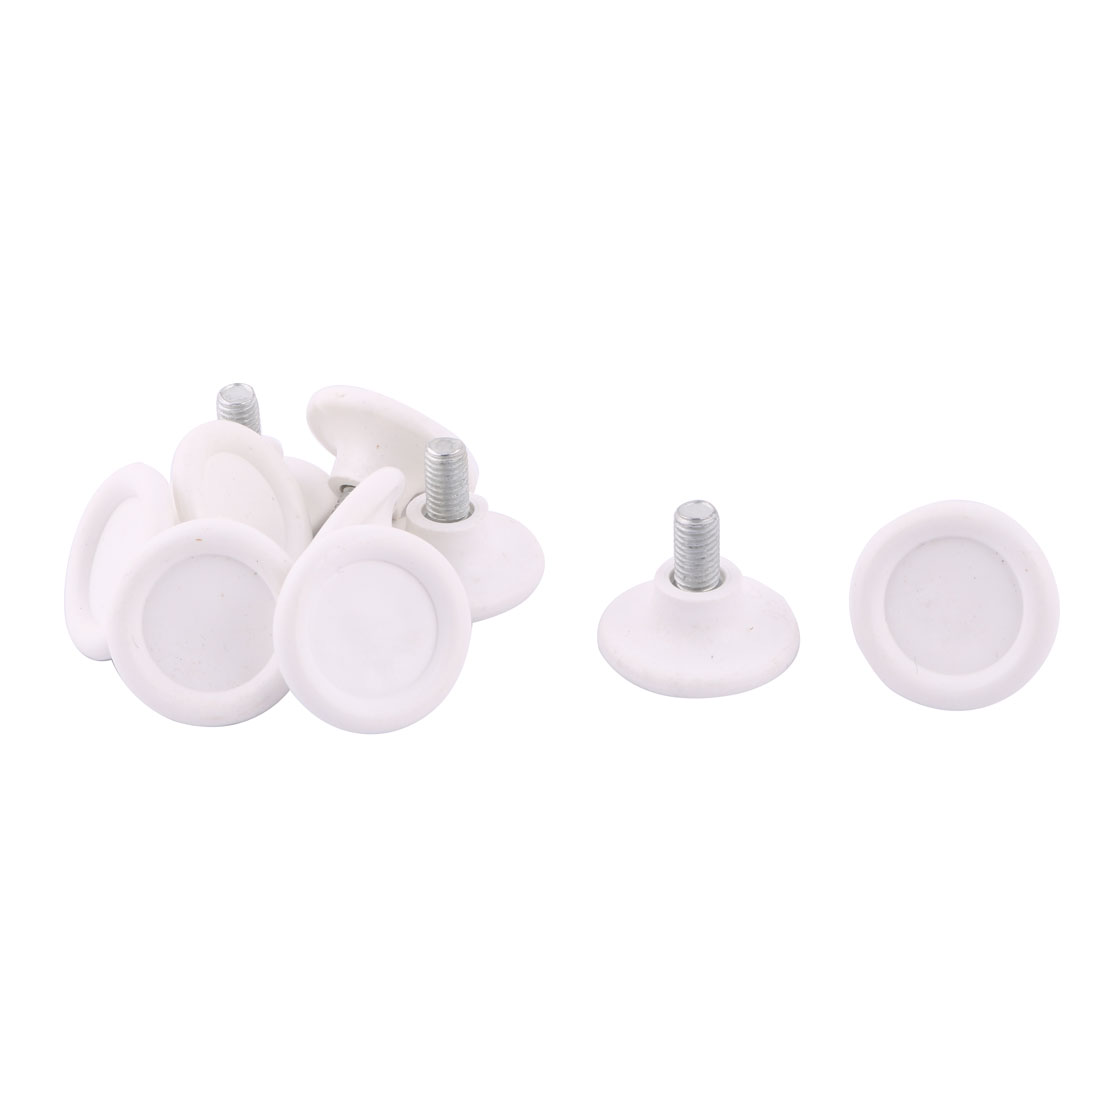 Home Office Plastic Base Round Adjustable Table Furniture Leg Cover Leveling Foot 10pcs